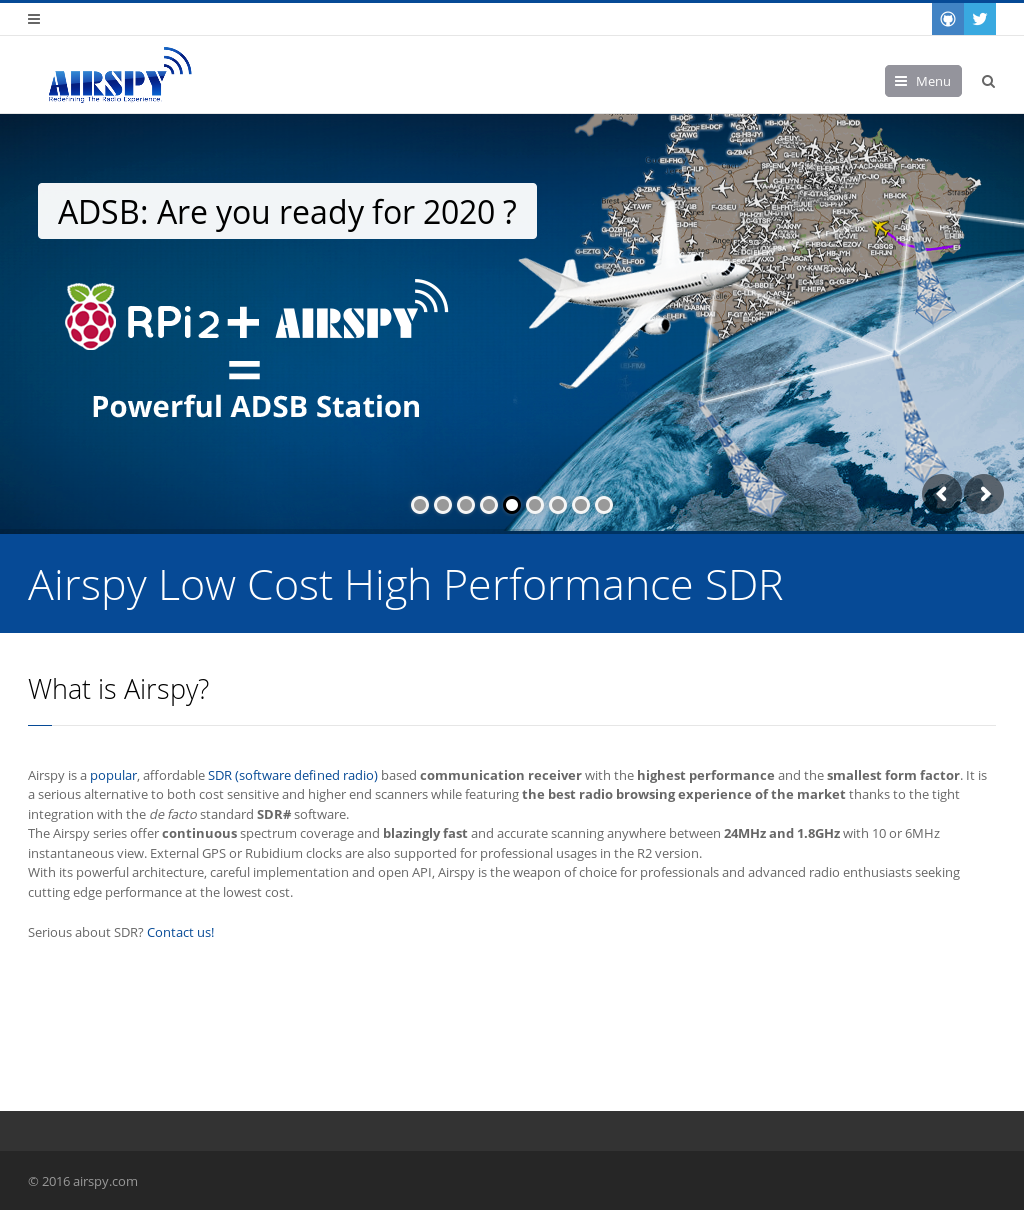 Airspy Networks Competitors, Revenue and Employees - Owler